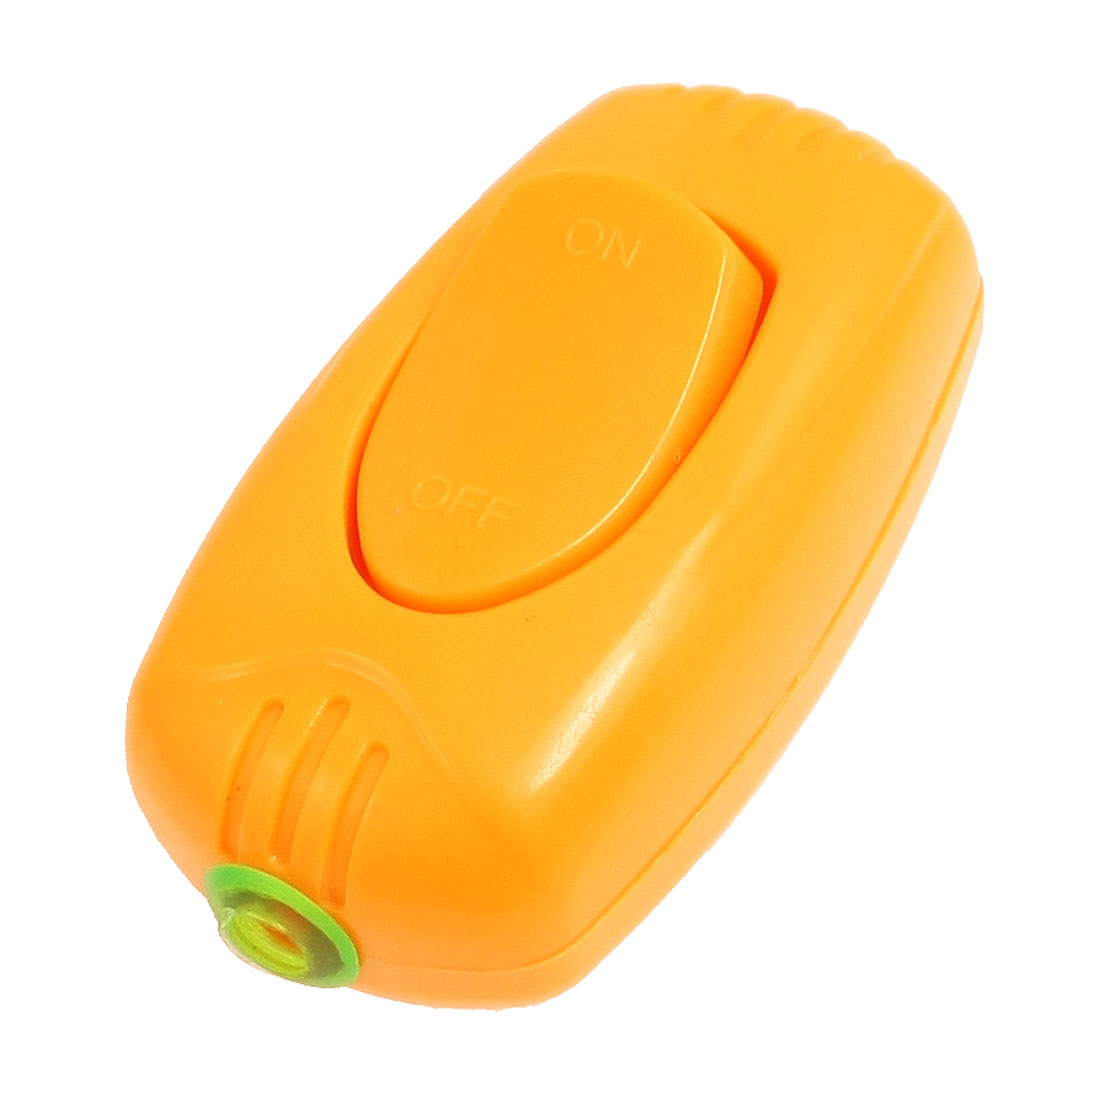 Oval Plastic in Line Cord Lamp Light Control On Off Switch Replacement Orange